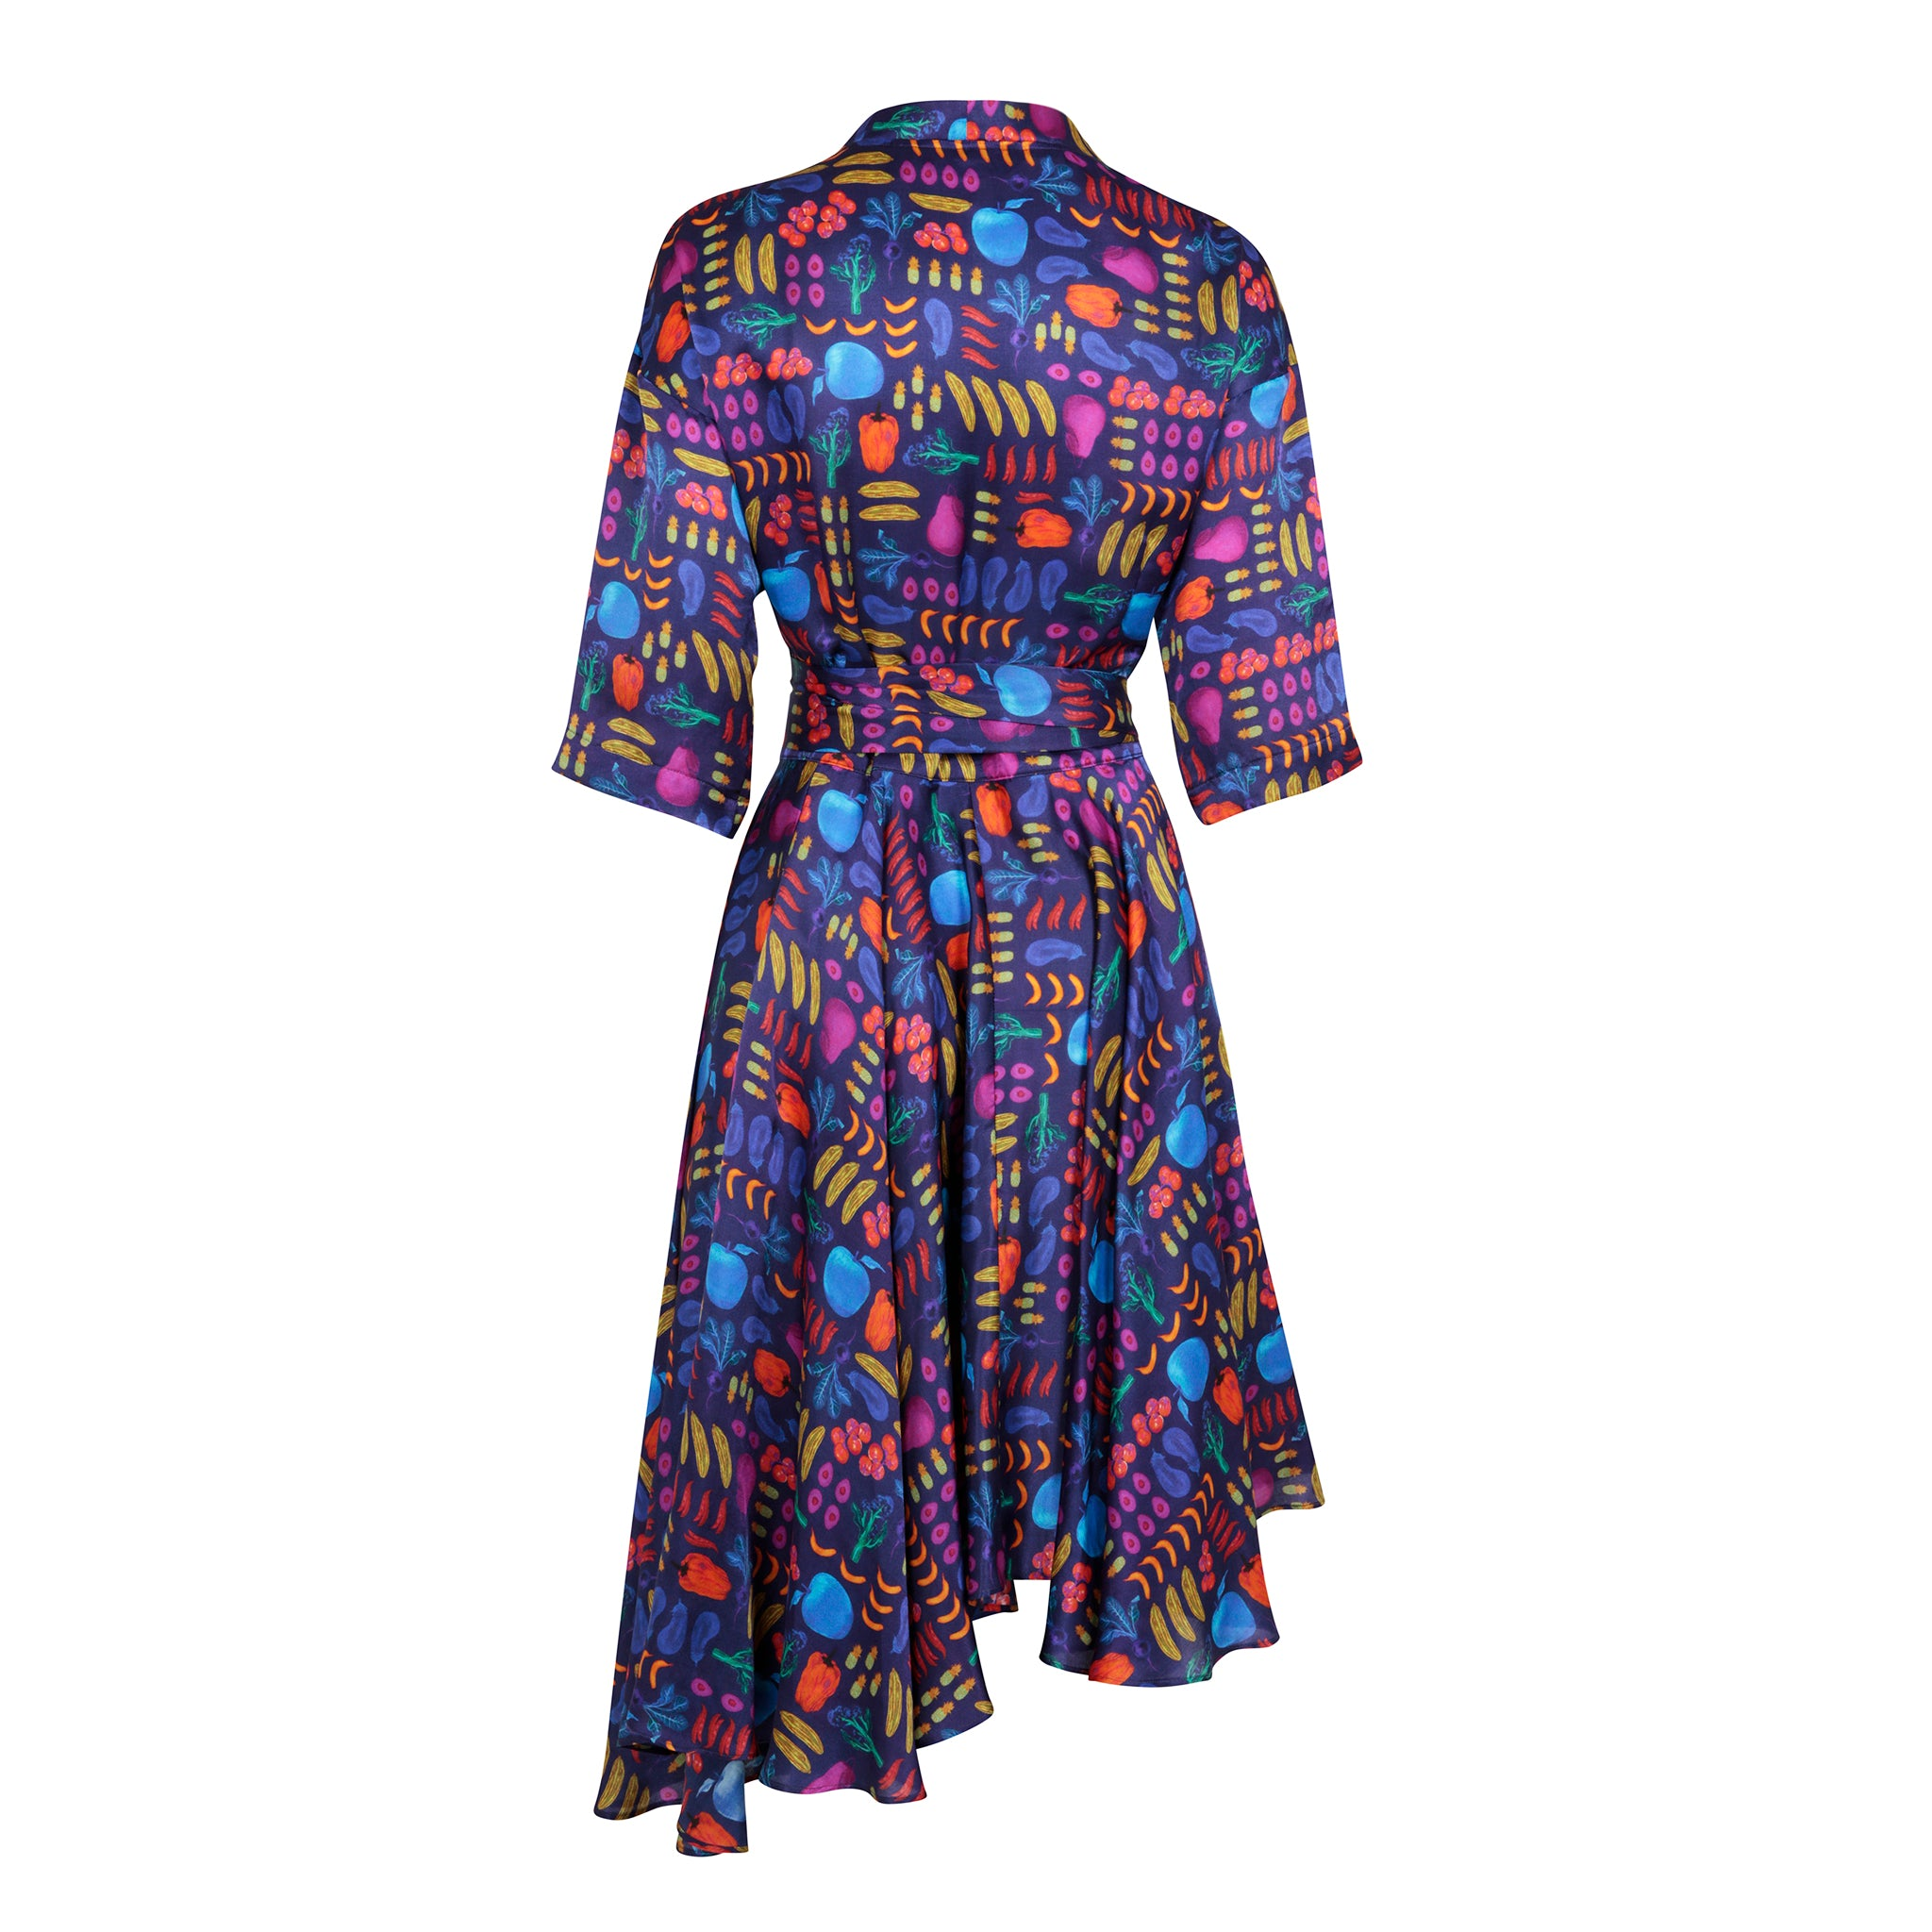 Airmiles Wrap Dress